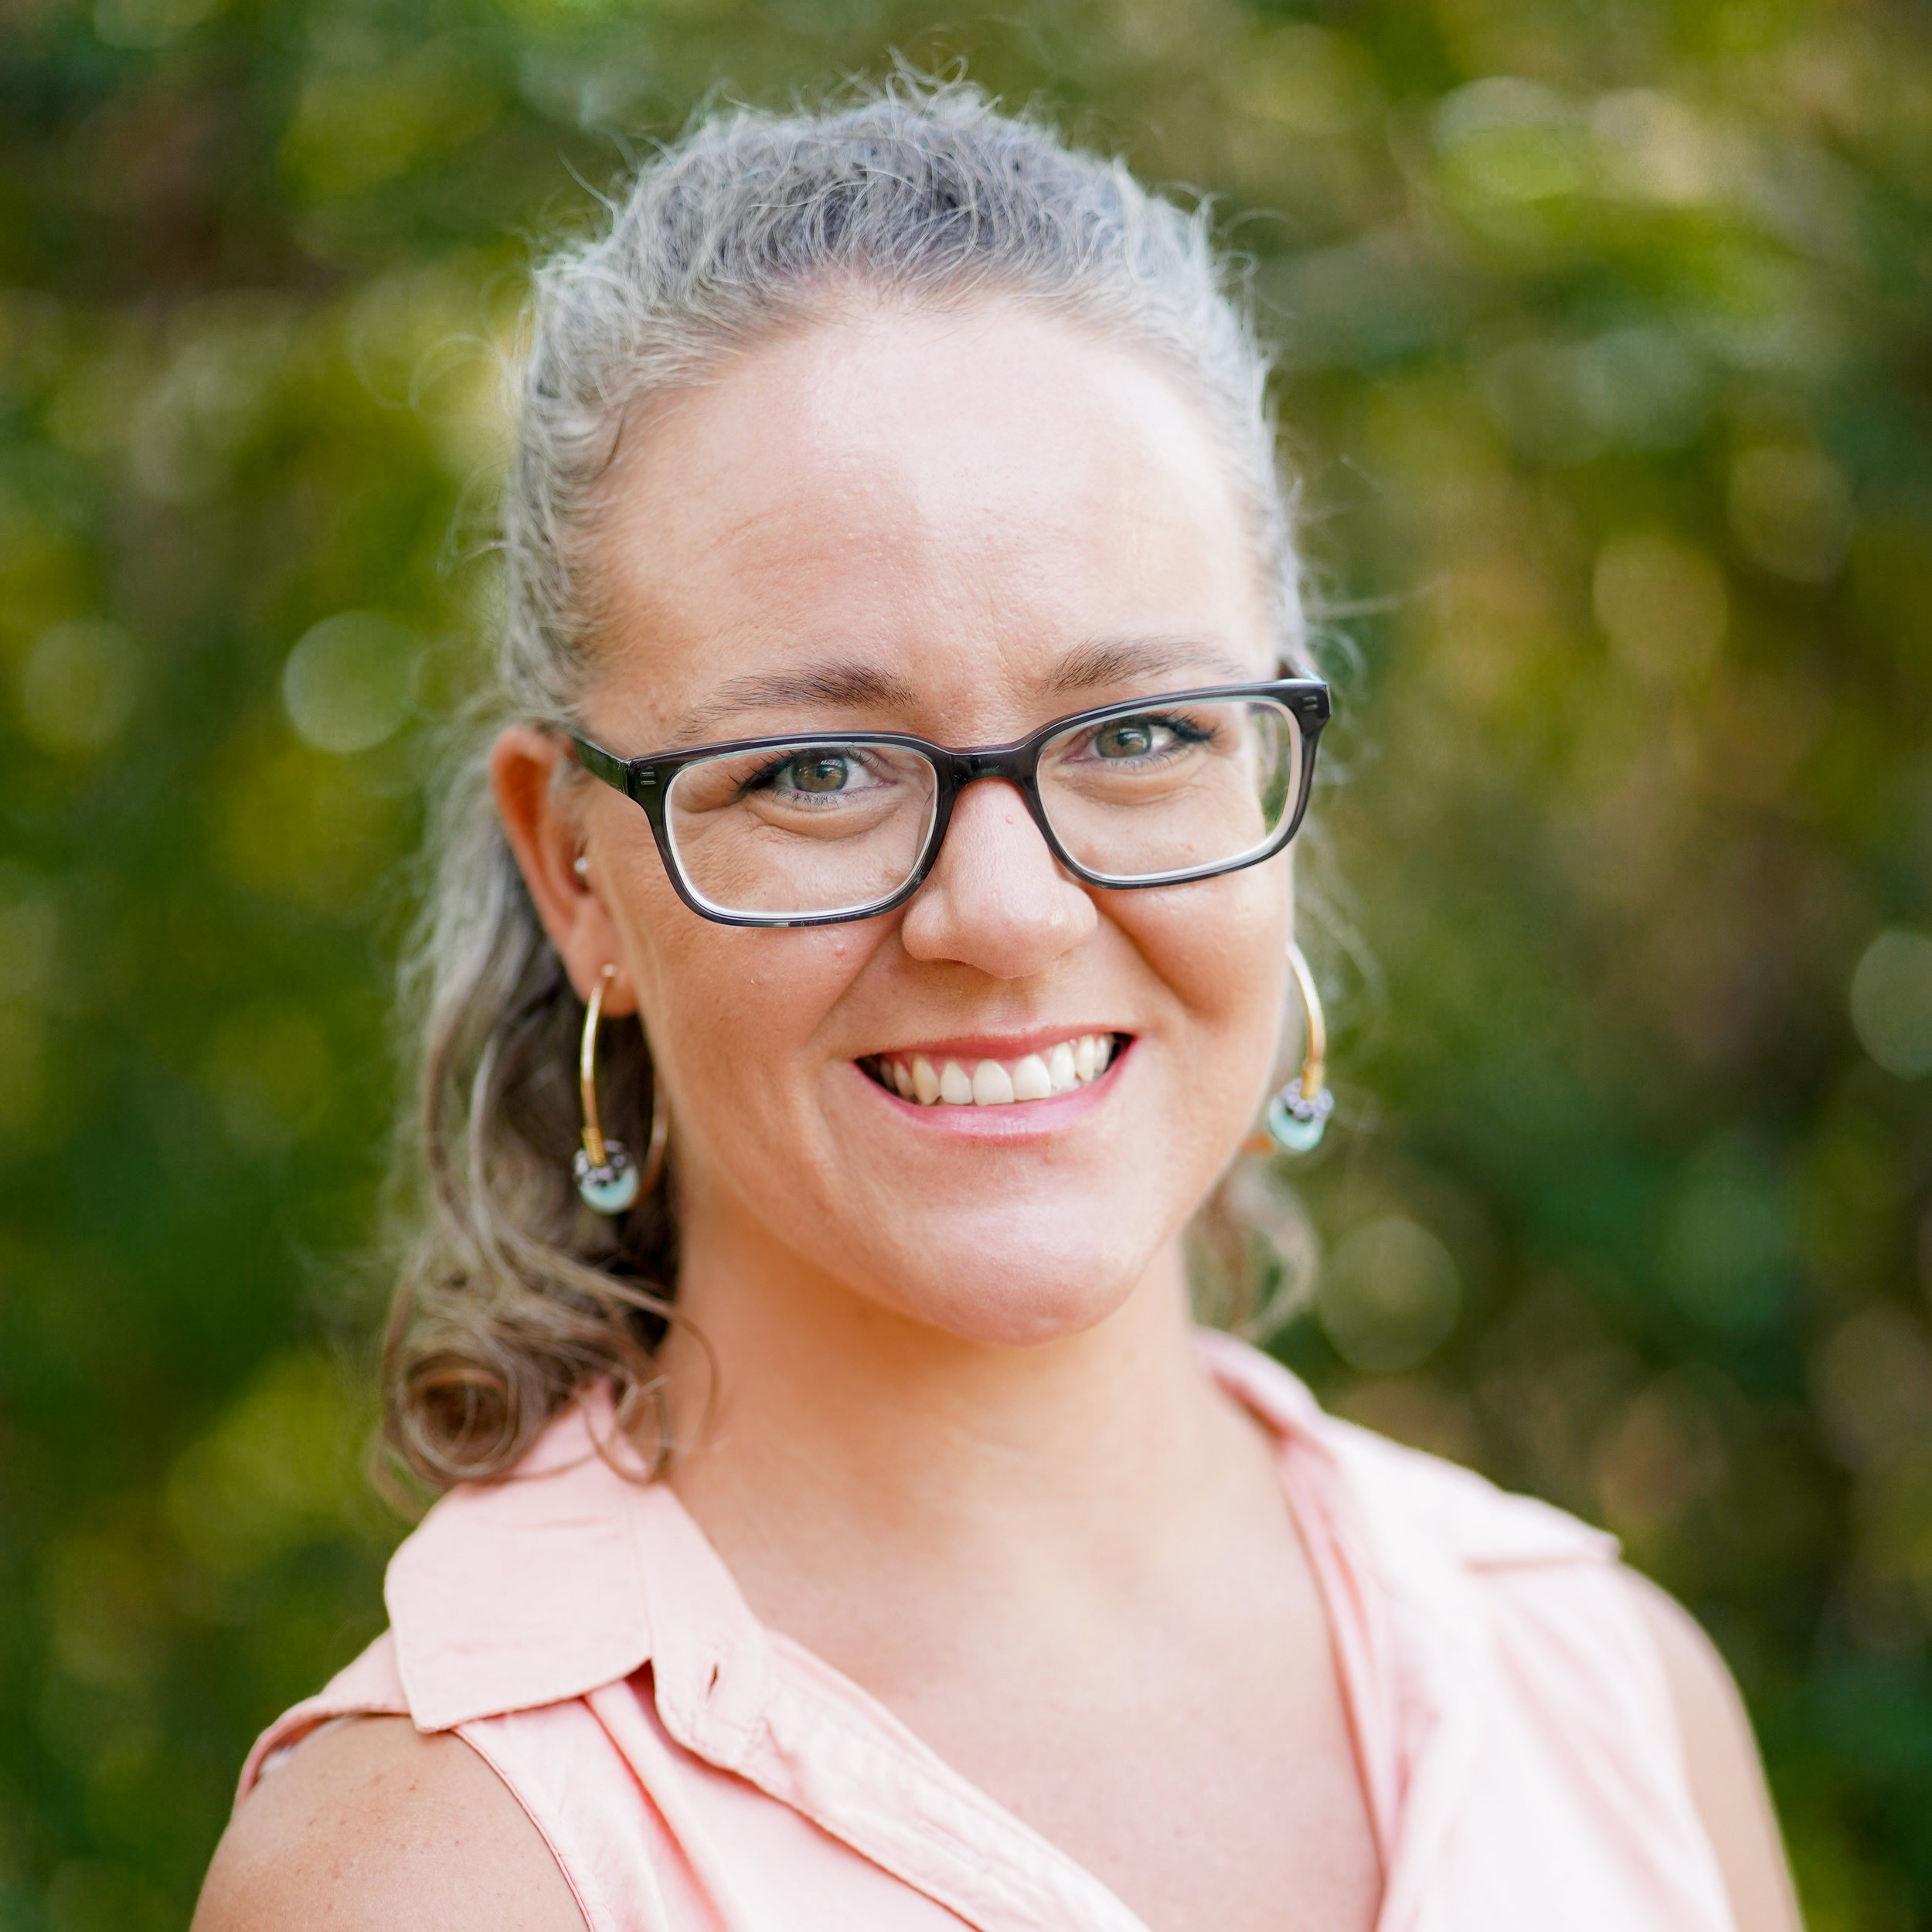 lindsay dakanSenior manager, Monitoring Evaluation and Learning - Lindsay is a Monitoring, Evaluation and Learning professional with a passion for women's empowerment. She joined Akola to oversee and launch a new comprehensive monitoring and evaluation strategy. Lindsay holds a Master of Arts in Sustainable International Development from the Heller School for Social Policy and Management at Brandeis University in Boston, MA.